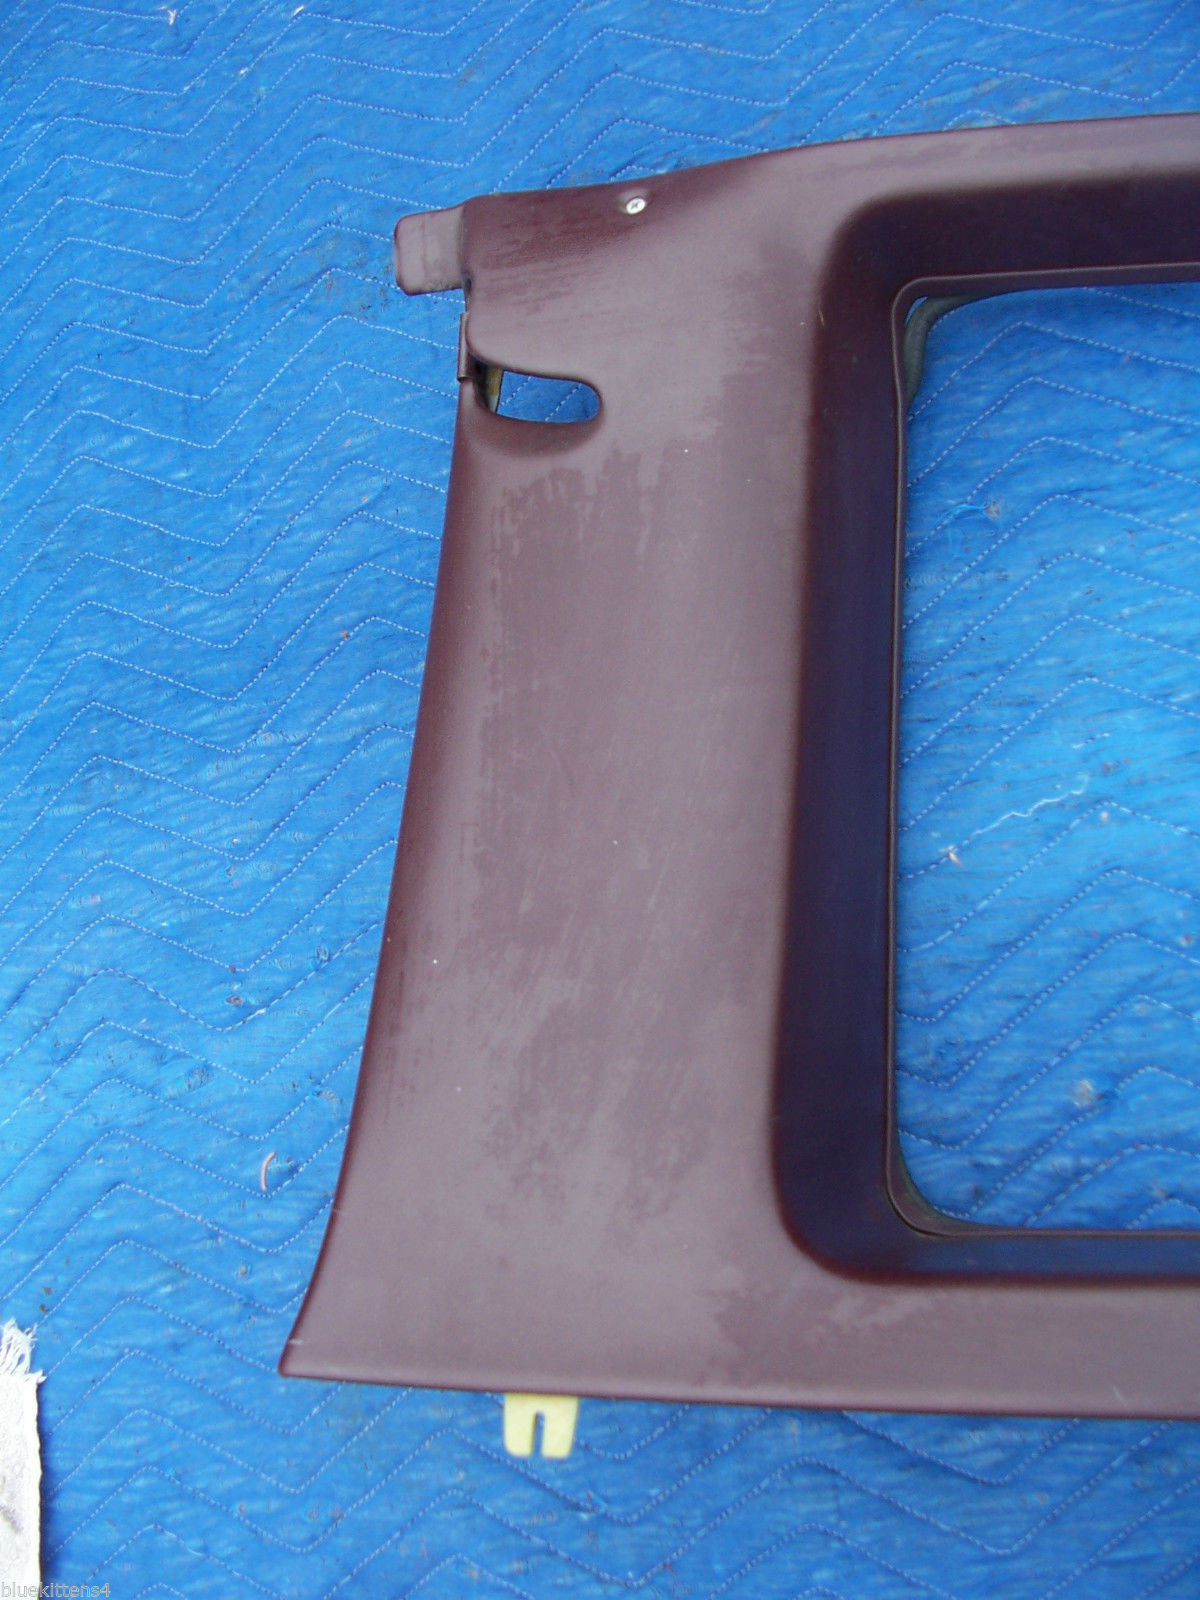 1977 COUPE DEVILLE RIGHT OPERA WINDOW TRIM PANEL OEM USED CADILLAC PART image 6